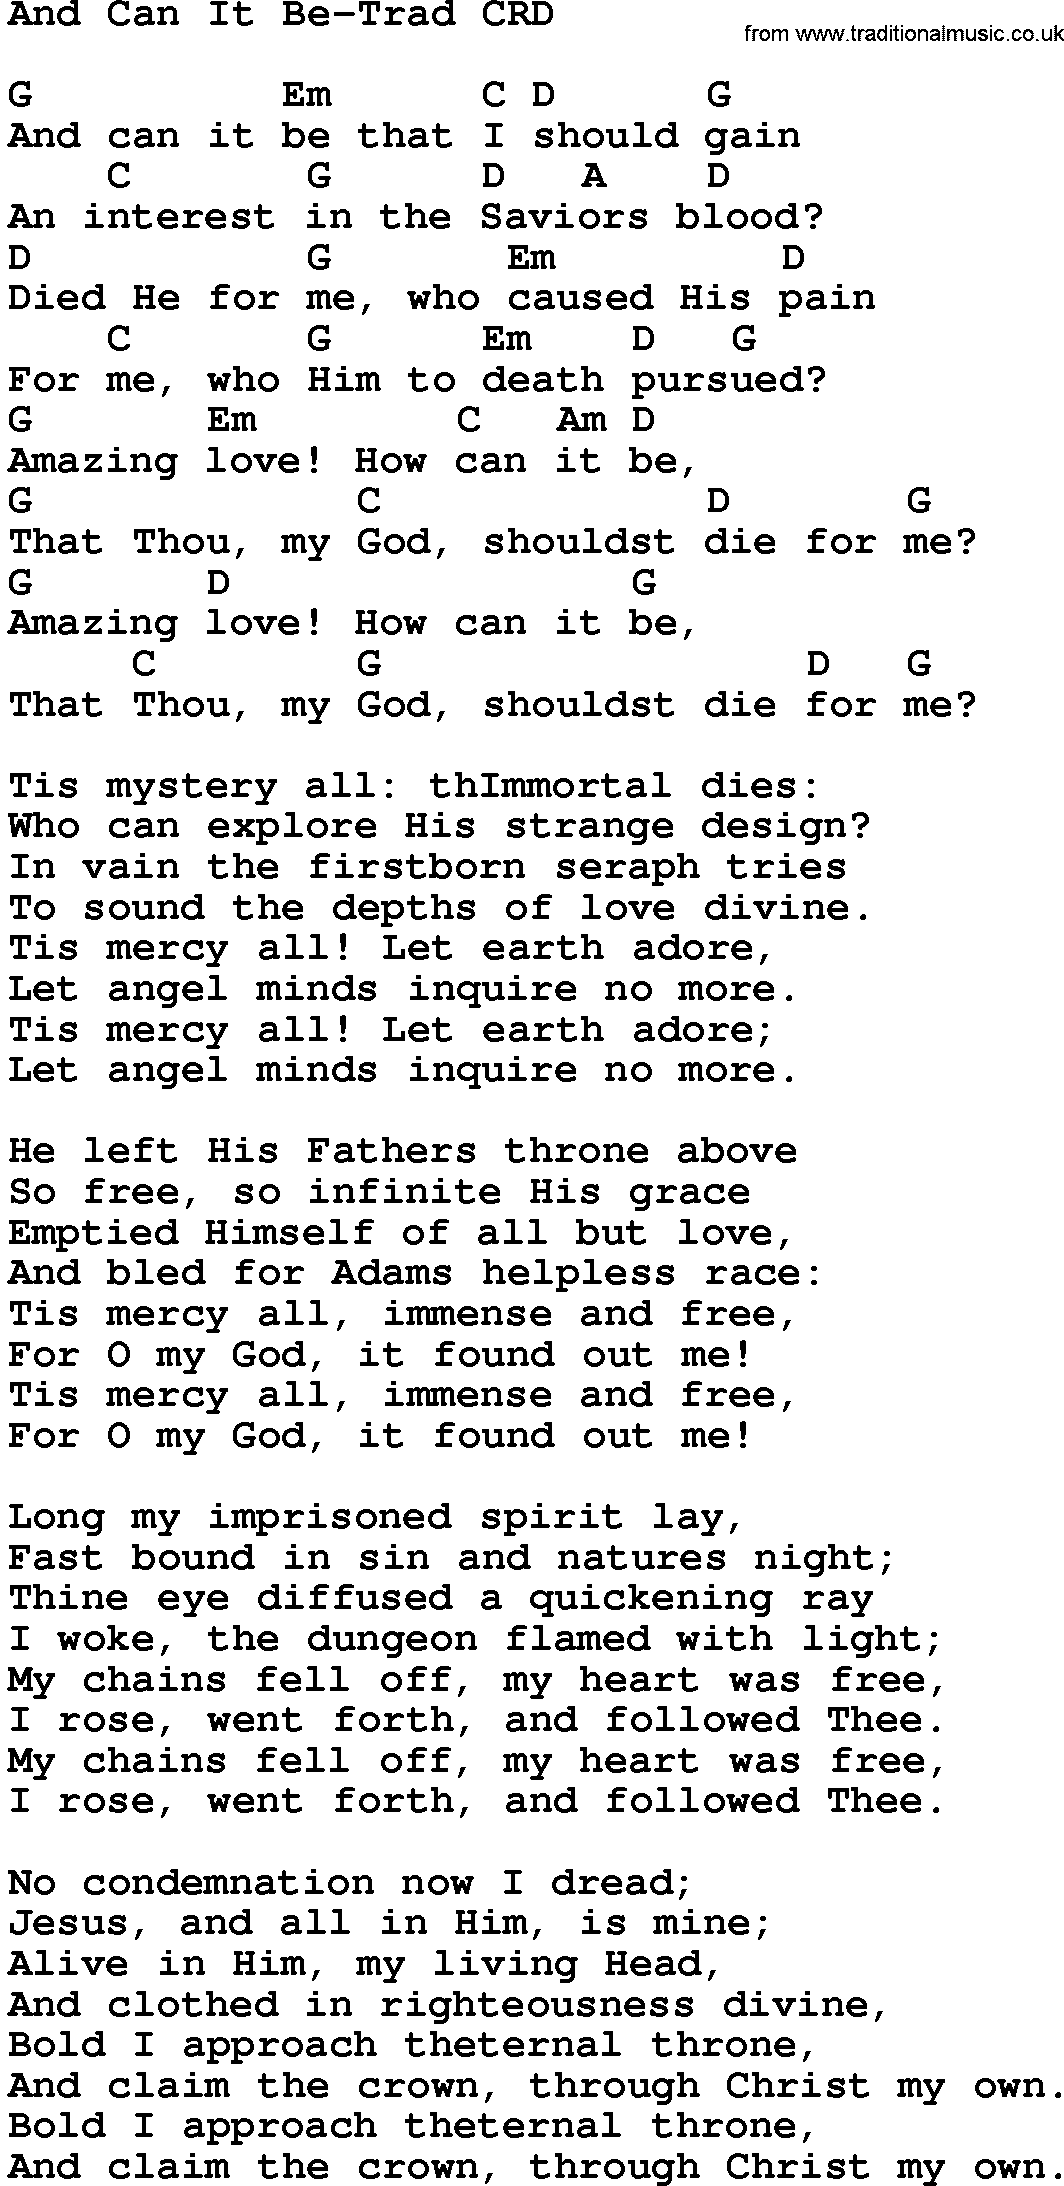 Song and can it be trad lyrics and chords gospel song and can it be trad lyrics and chords hexwebz Images